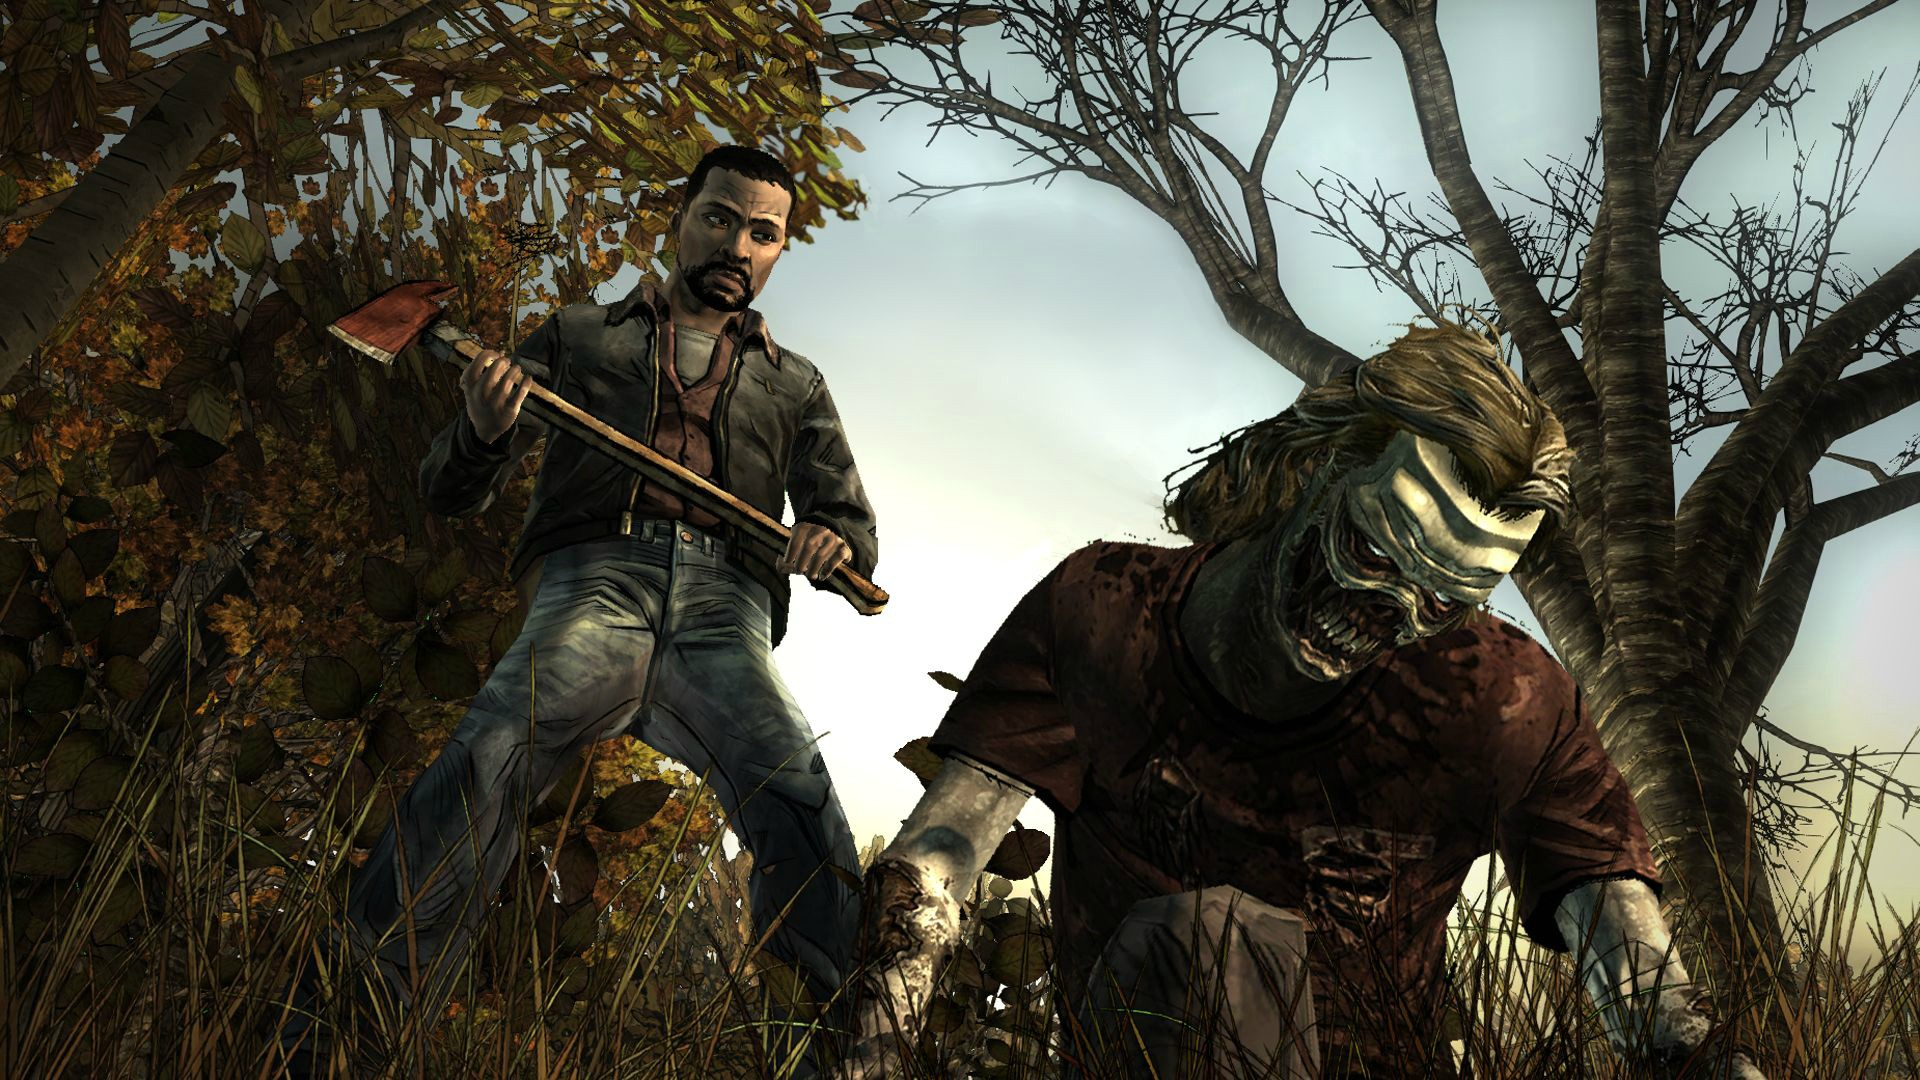 The_Walking_Dead__Episode_2_Xbox_360_05.